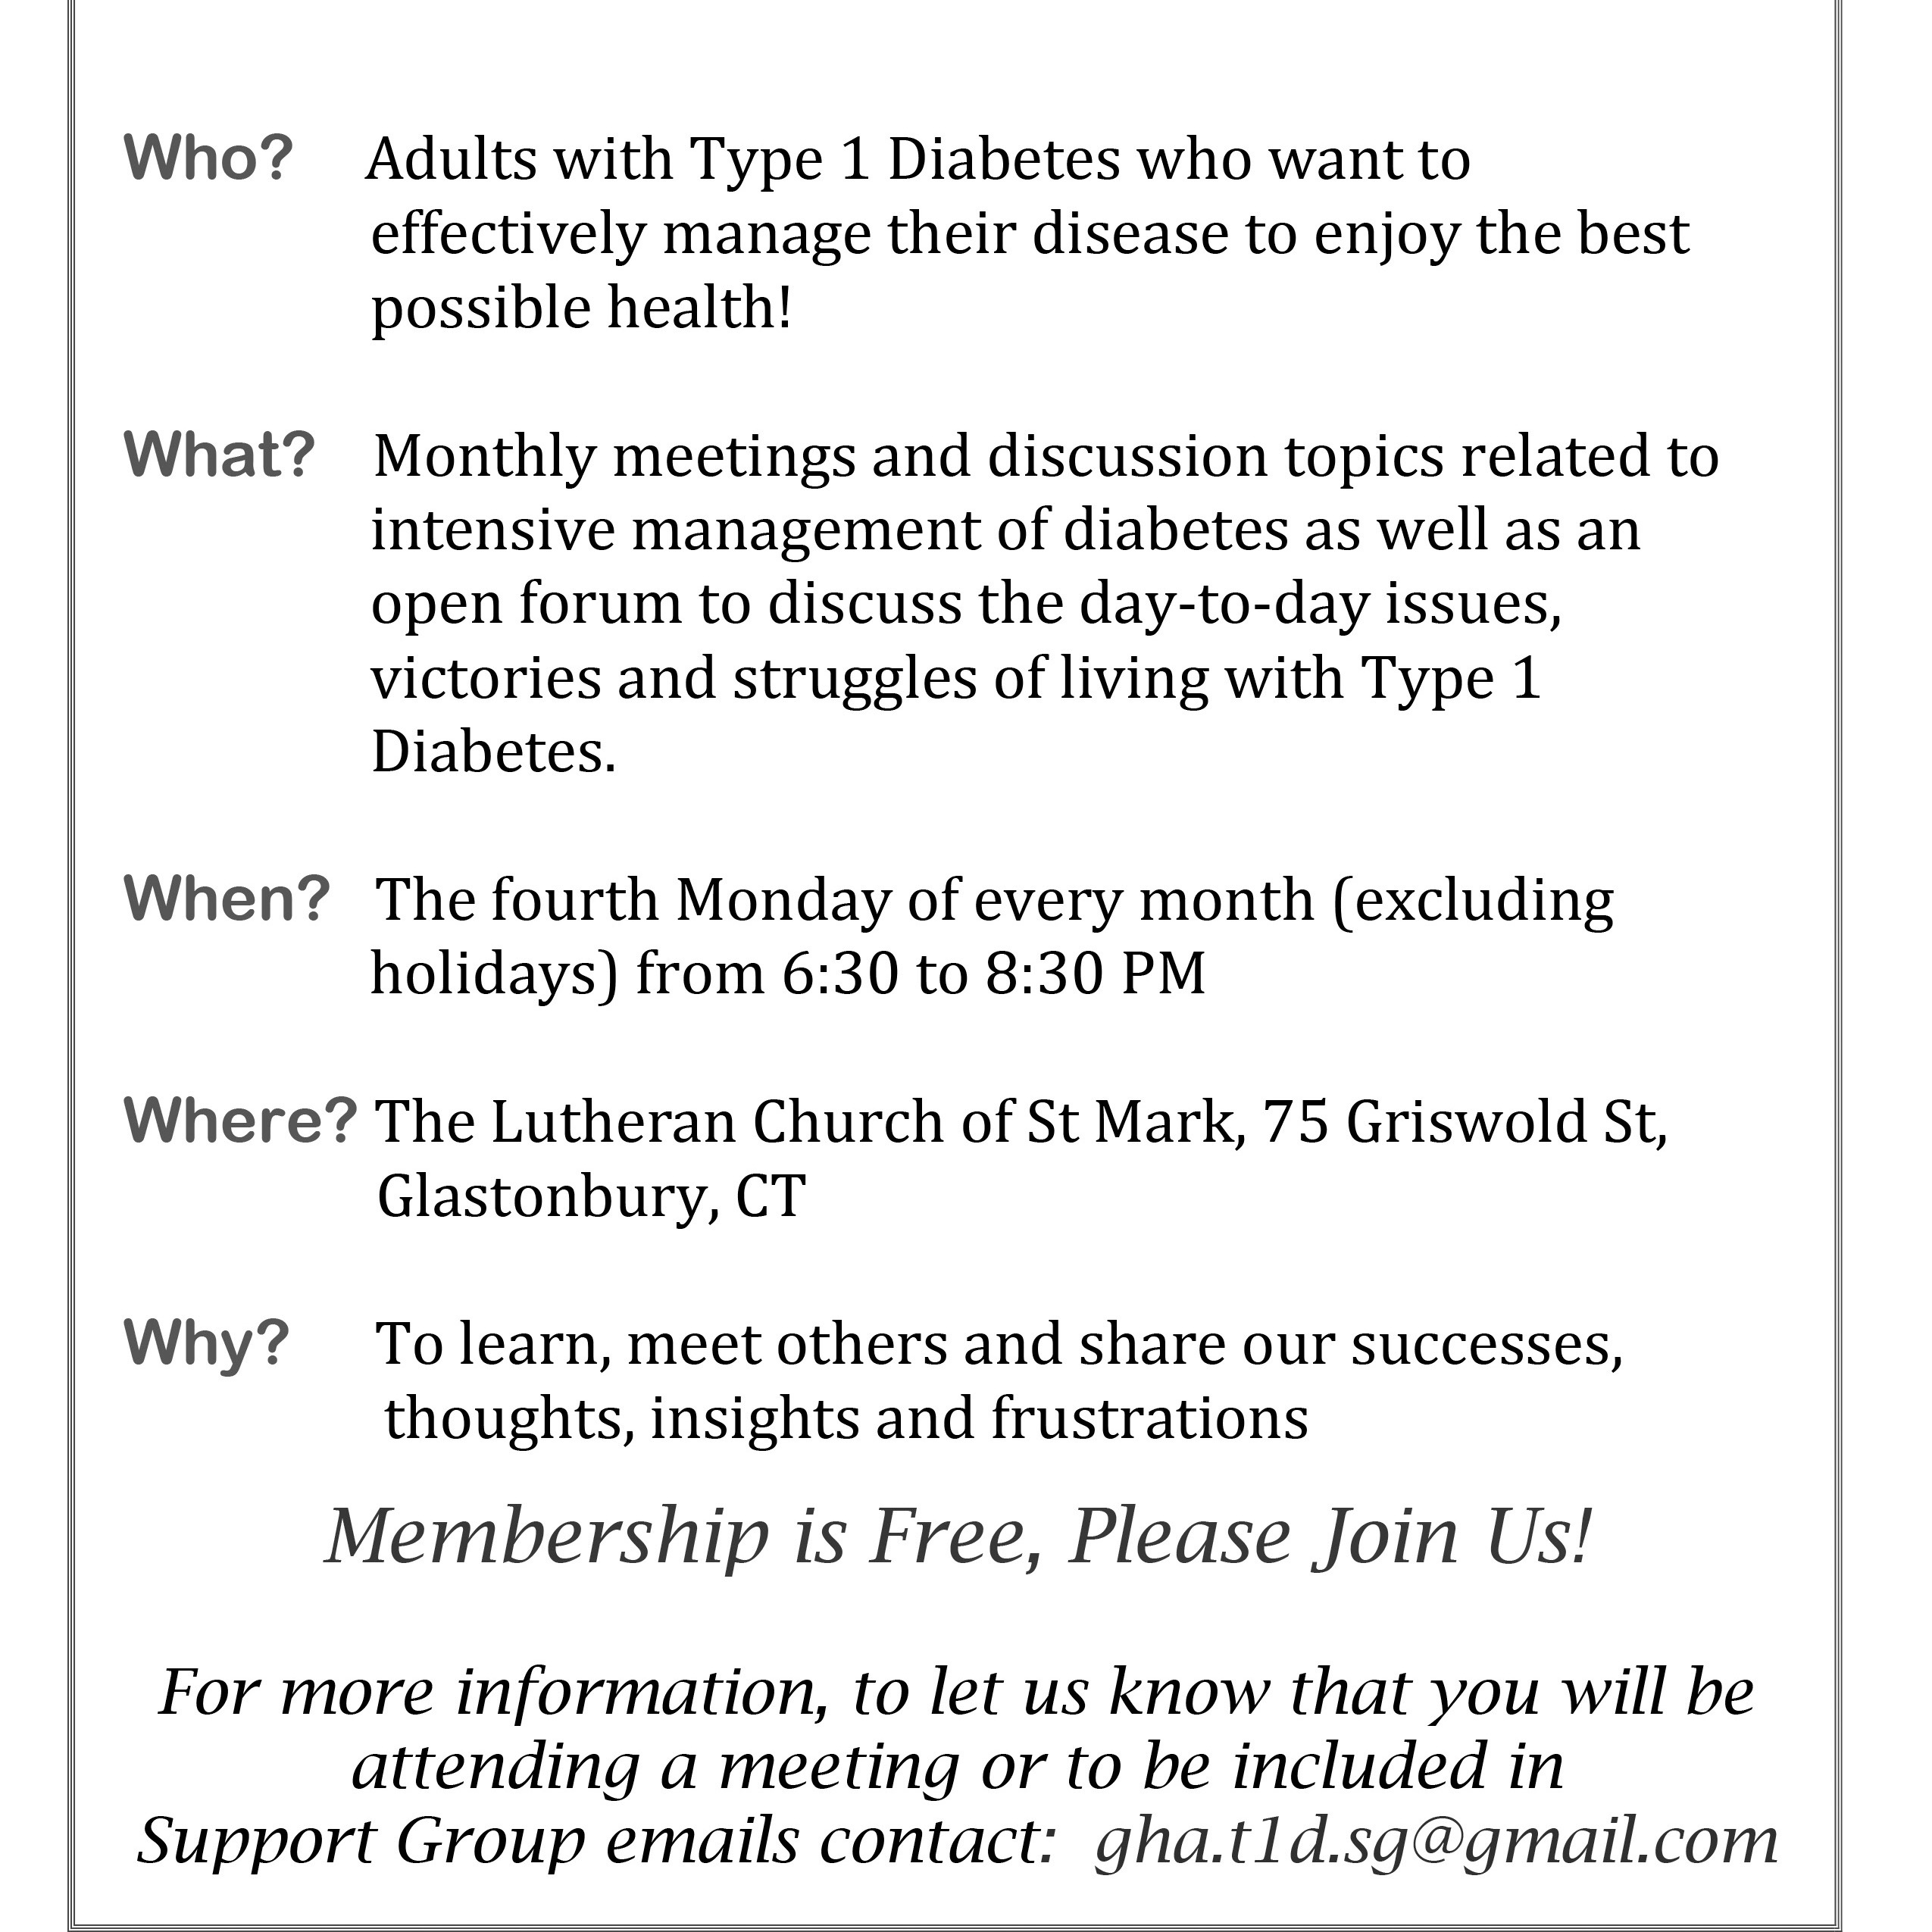 Ct support groups for adults